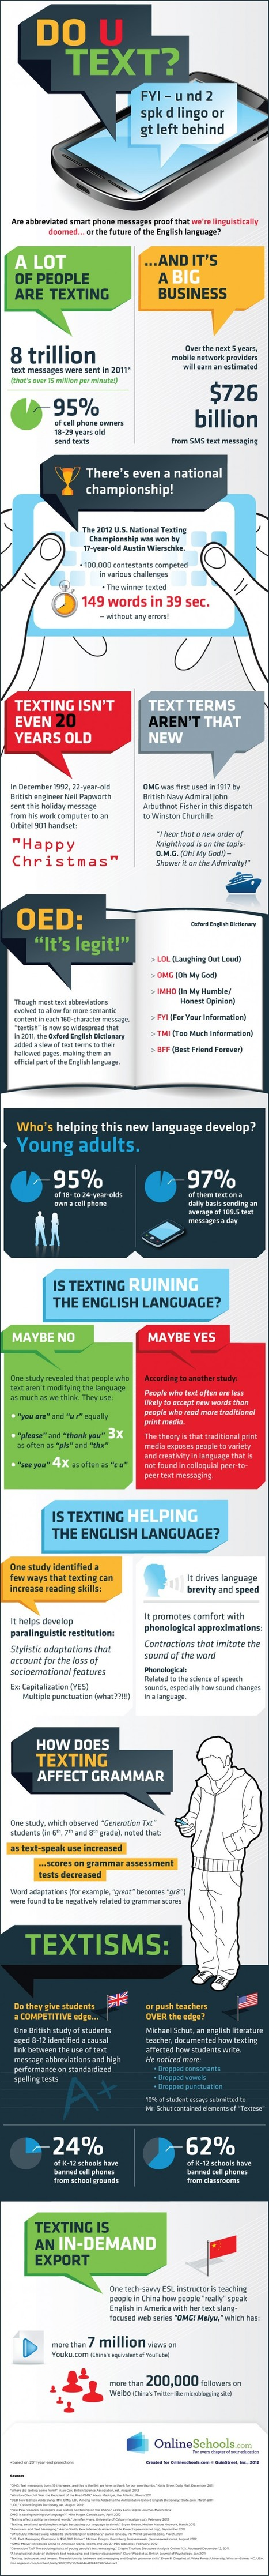 How Texting Is Changing Your Grammar [Infographic] | Teaching Now | Scoop.it